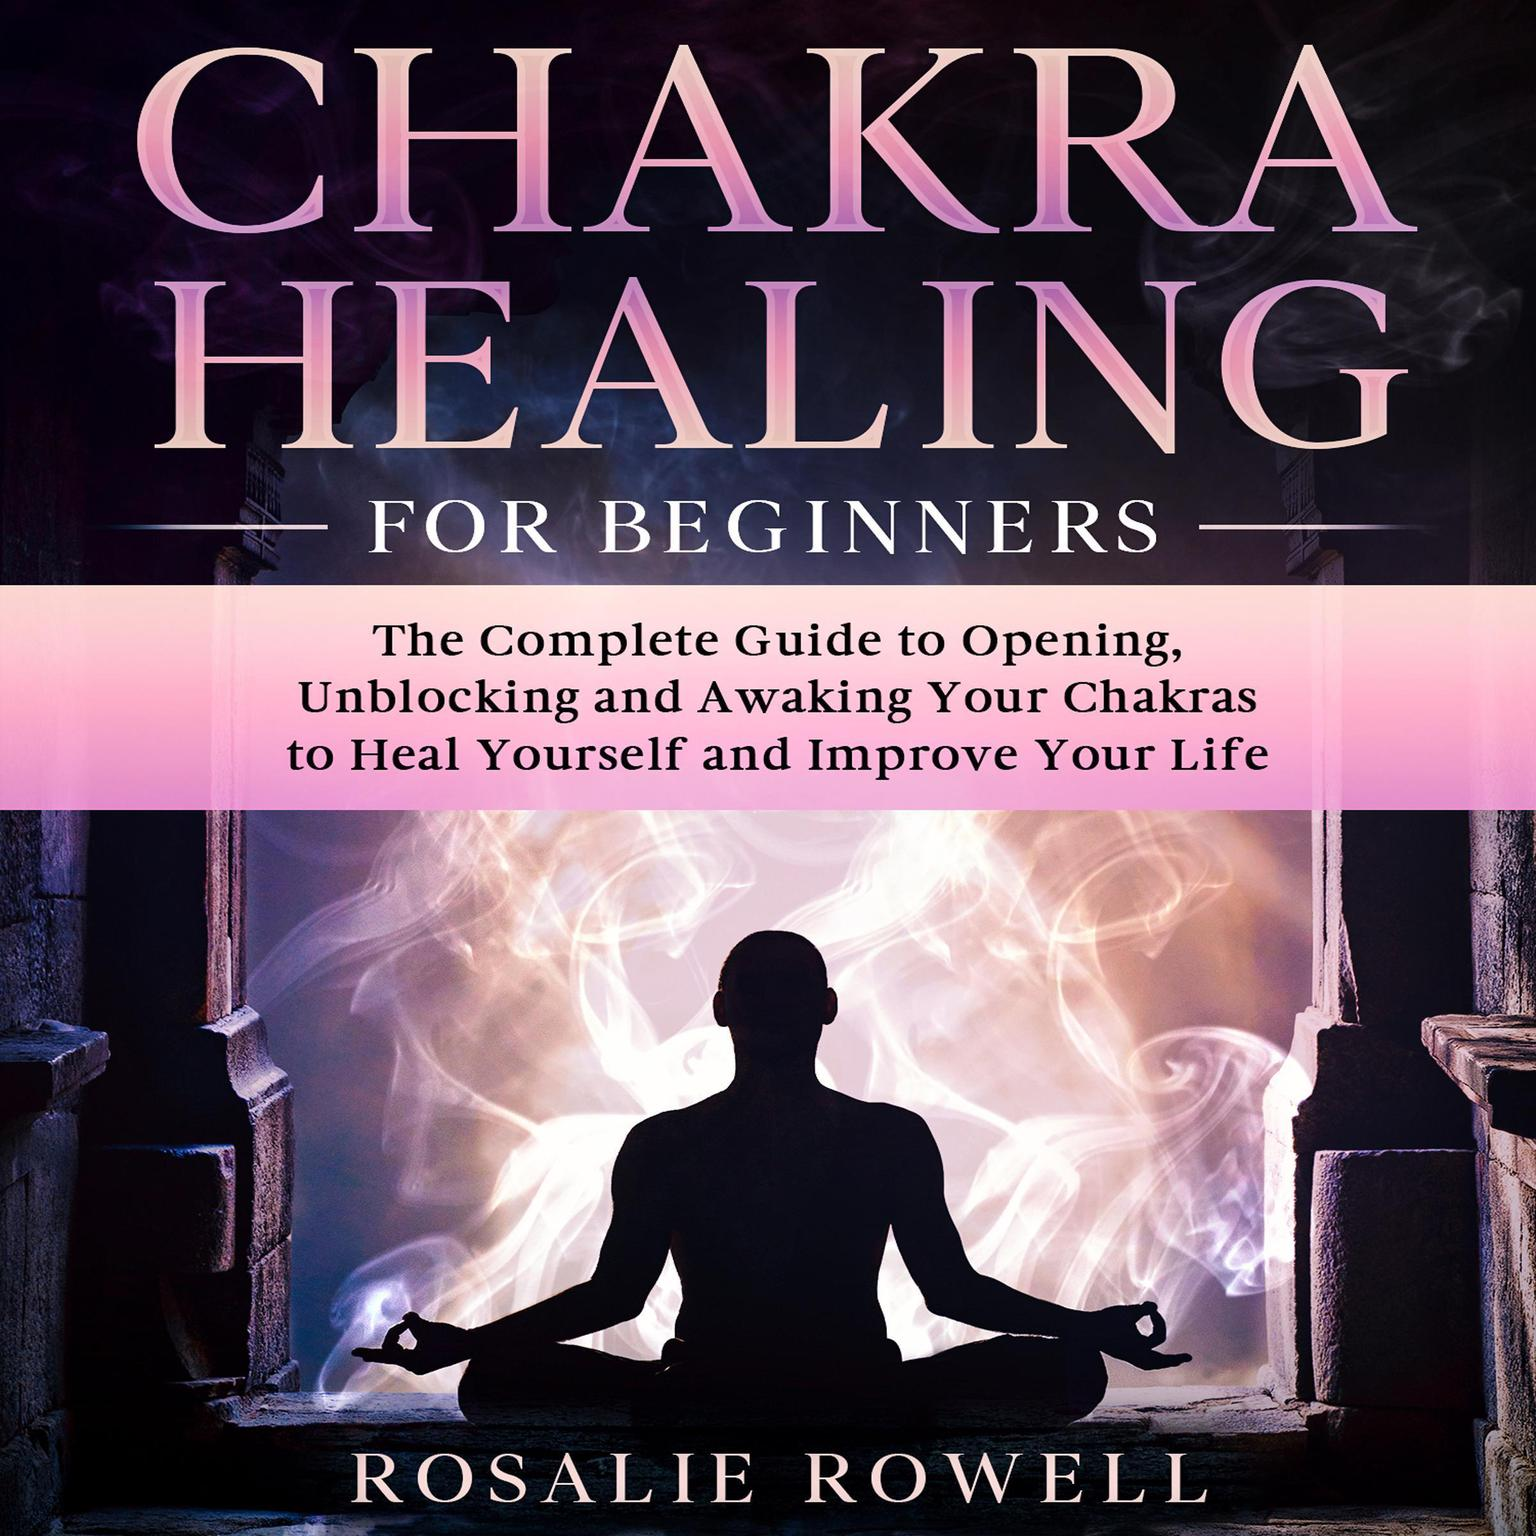 Chakra Healing for Beginners: The Complete Guide to Opening, Unblocking and Awaking Your Chakras to Heal Yourself and Improve Your Life Audiobook, by Rosalie Rowell